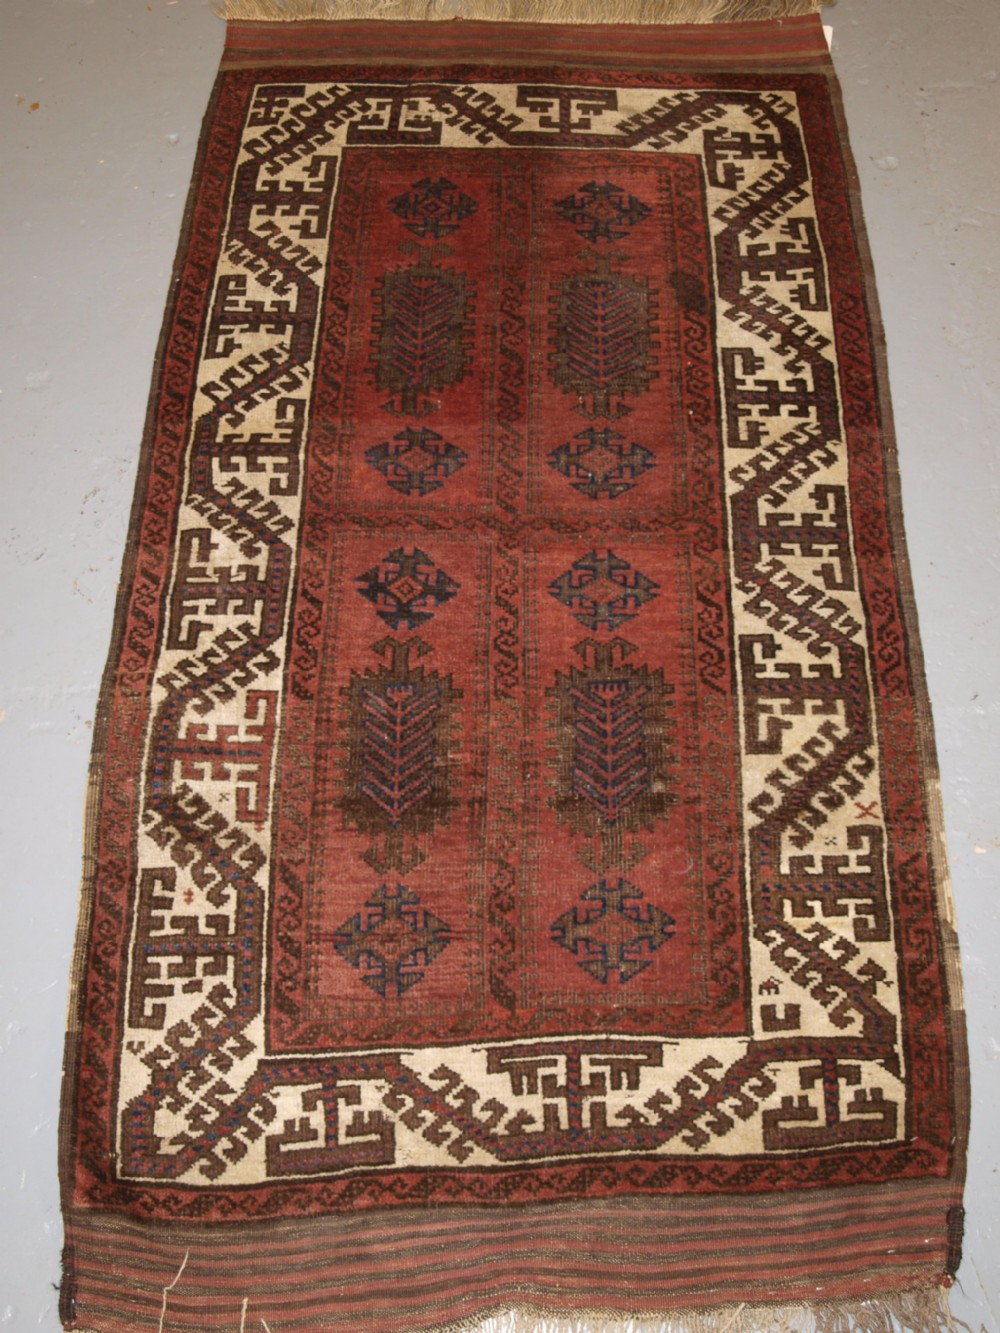 antique baluch rug possibly timuri large scale design white border 2nd half 19th century